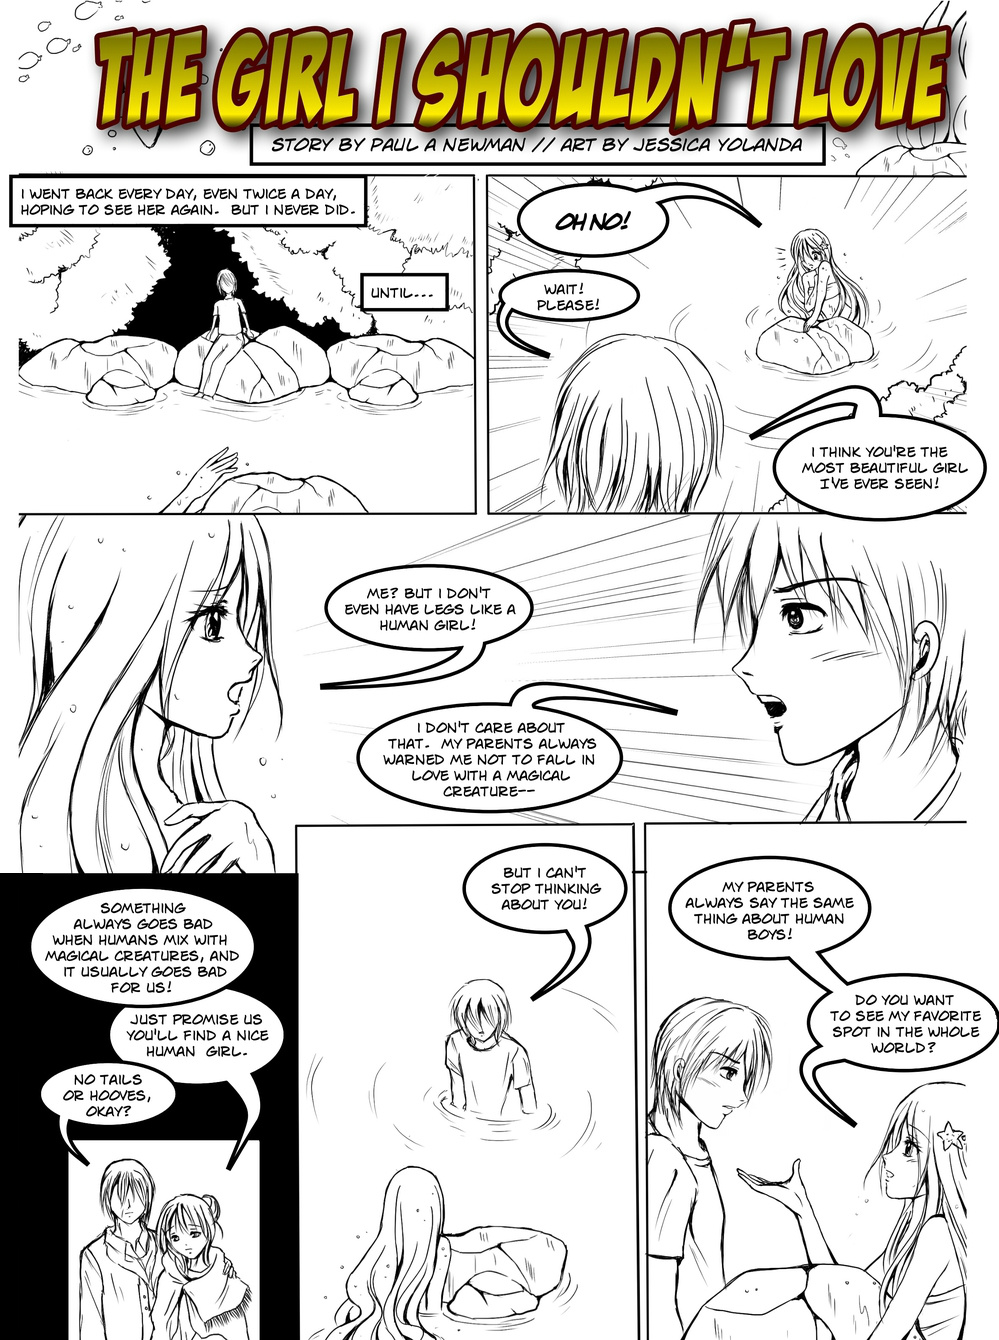 THE GIRL I SHOULDN'T LOVE page 2 - story 10 in The Book of Lies